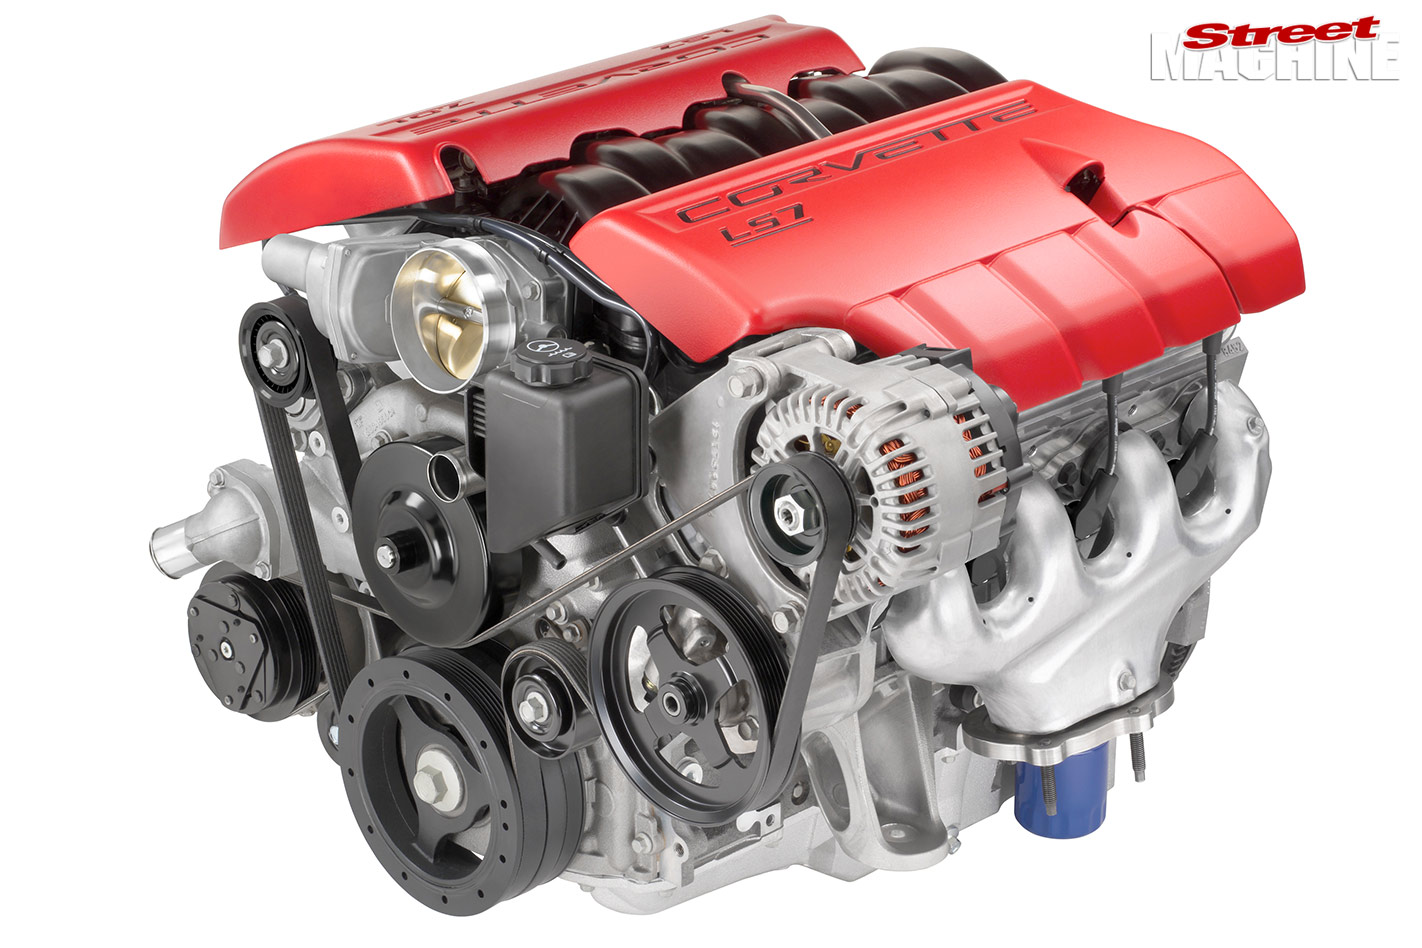 LS engine variants part two - Generation IV